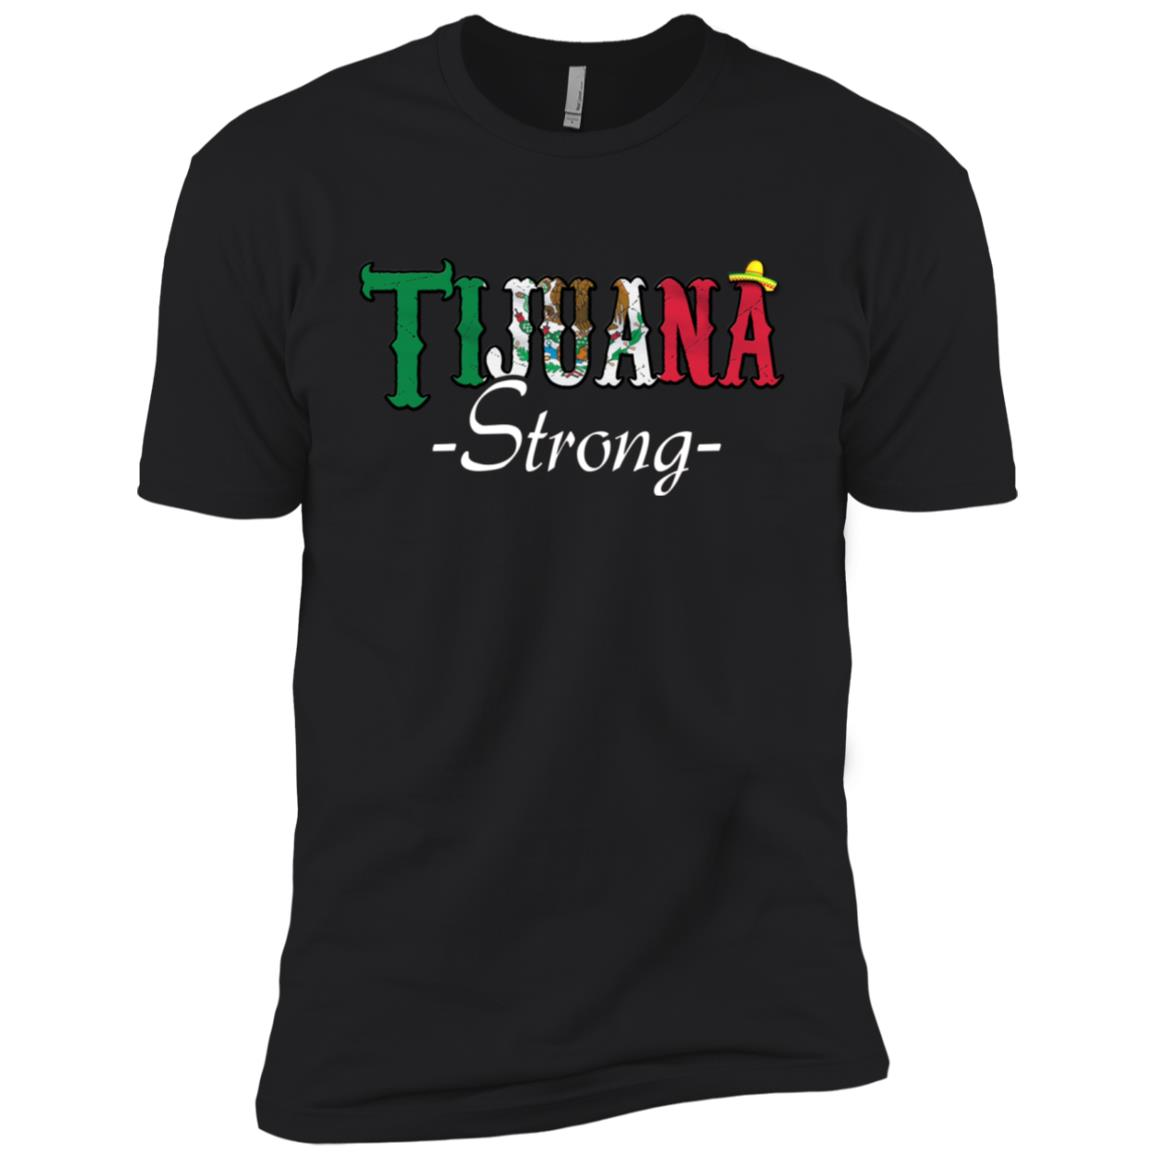 Make Tijuana Mexico Great Again Funny Gift Idea s-5 Men Short Sleeve T-Shirt